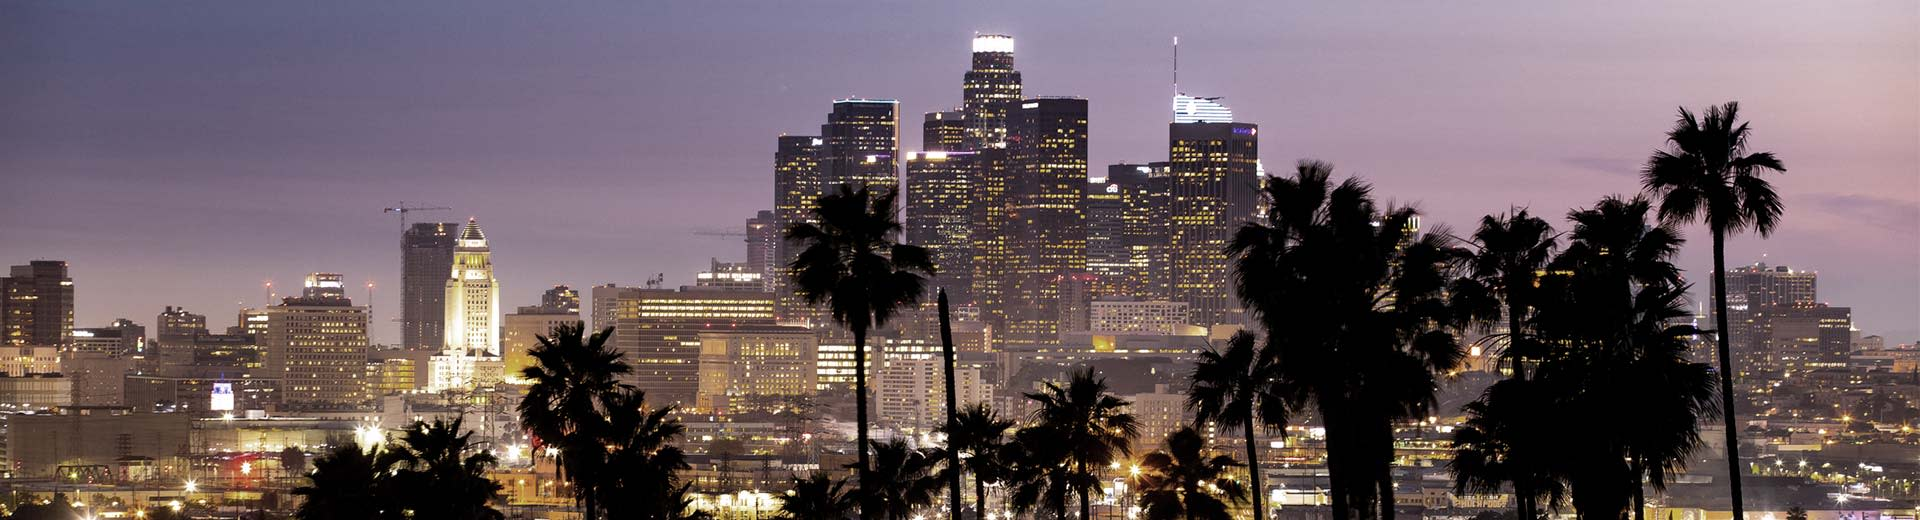 Palm trees at night and the downtown skyscrapers of Los Angeles light up the sky